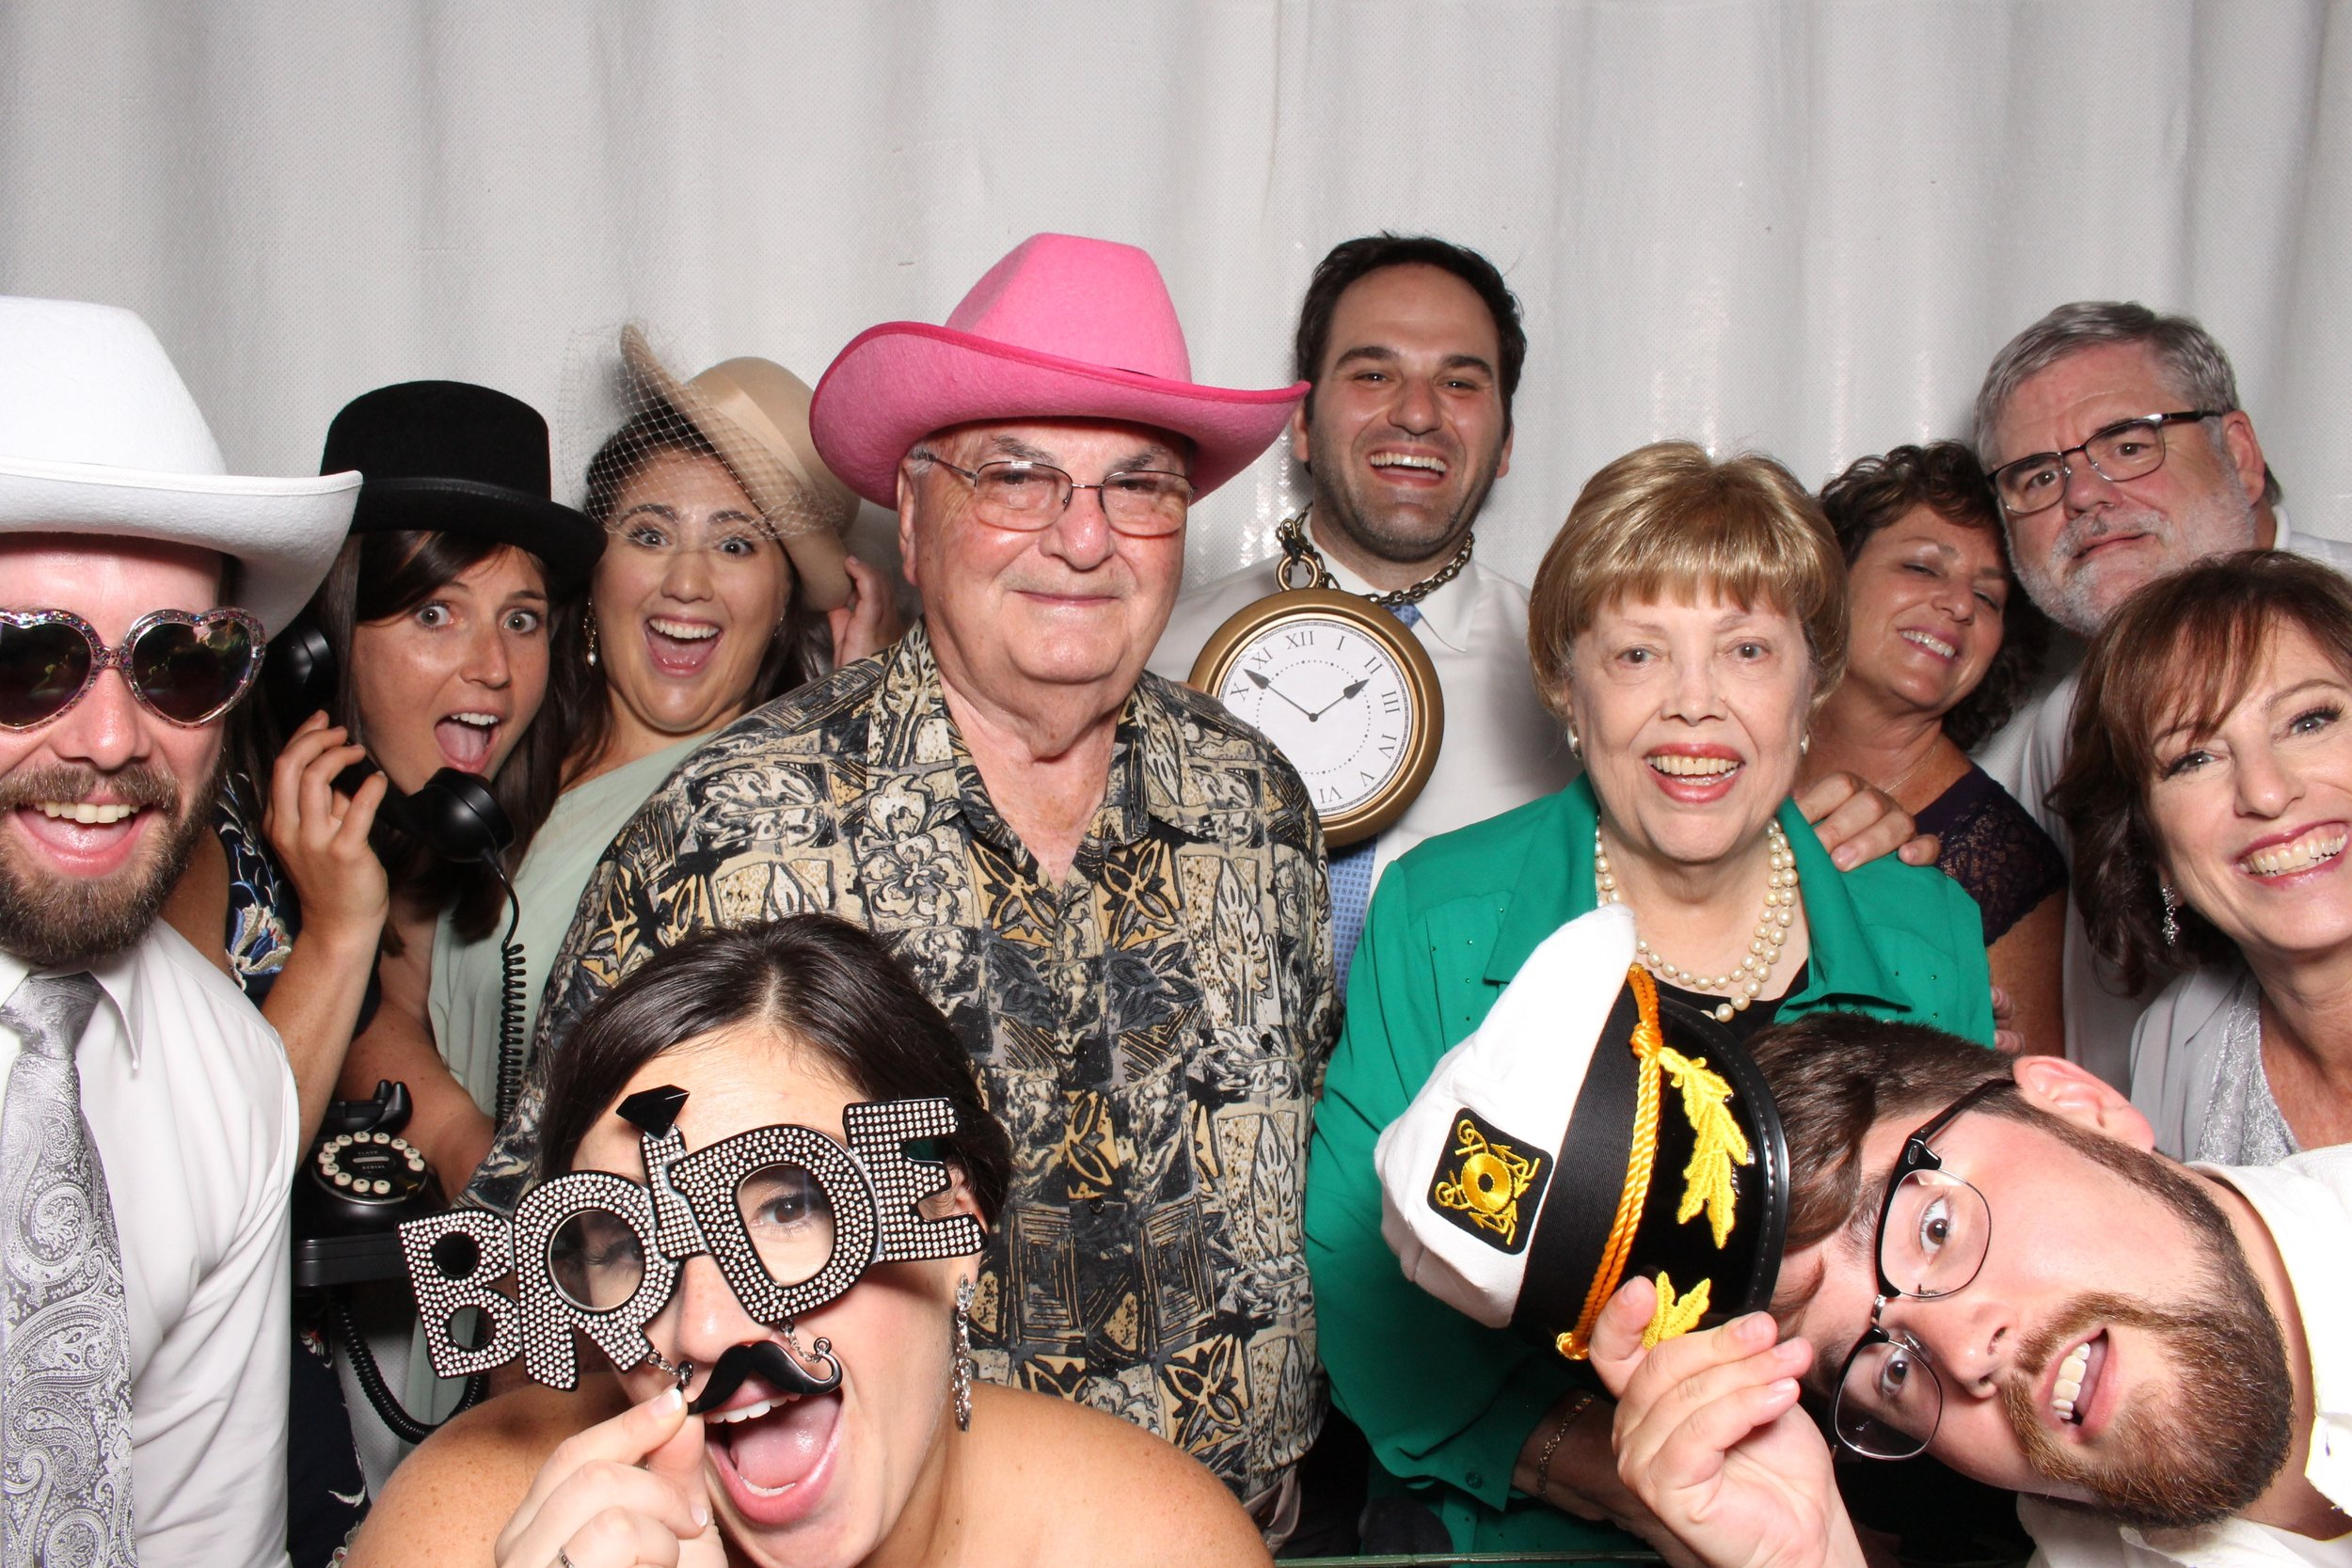 athens photo booths wedding reception.jpg